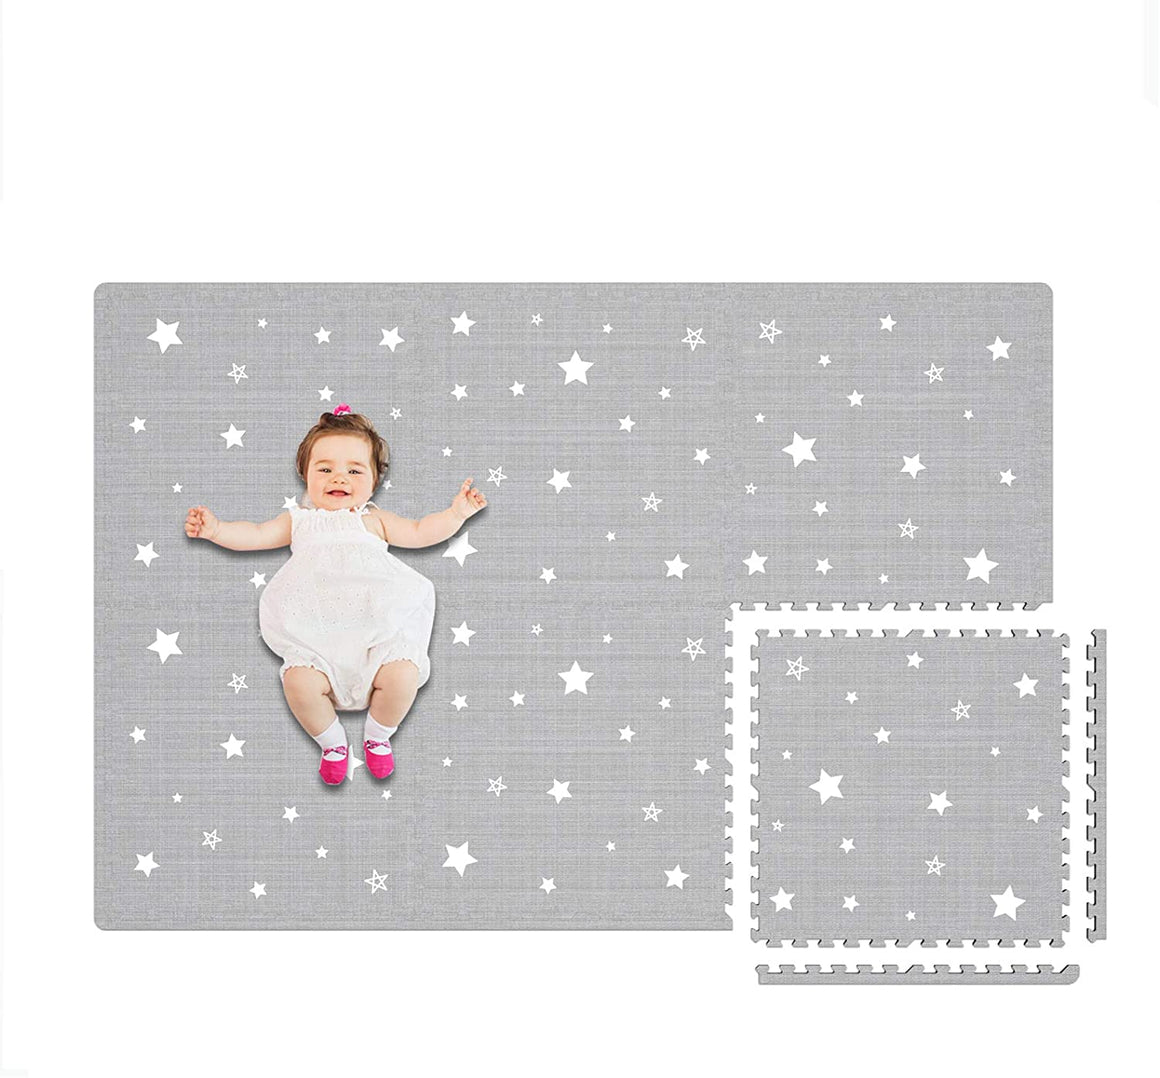 Baby Play Mat - Extra Large (4FT x 6FT) - White Star